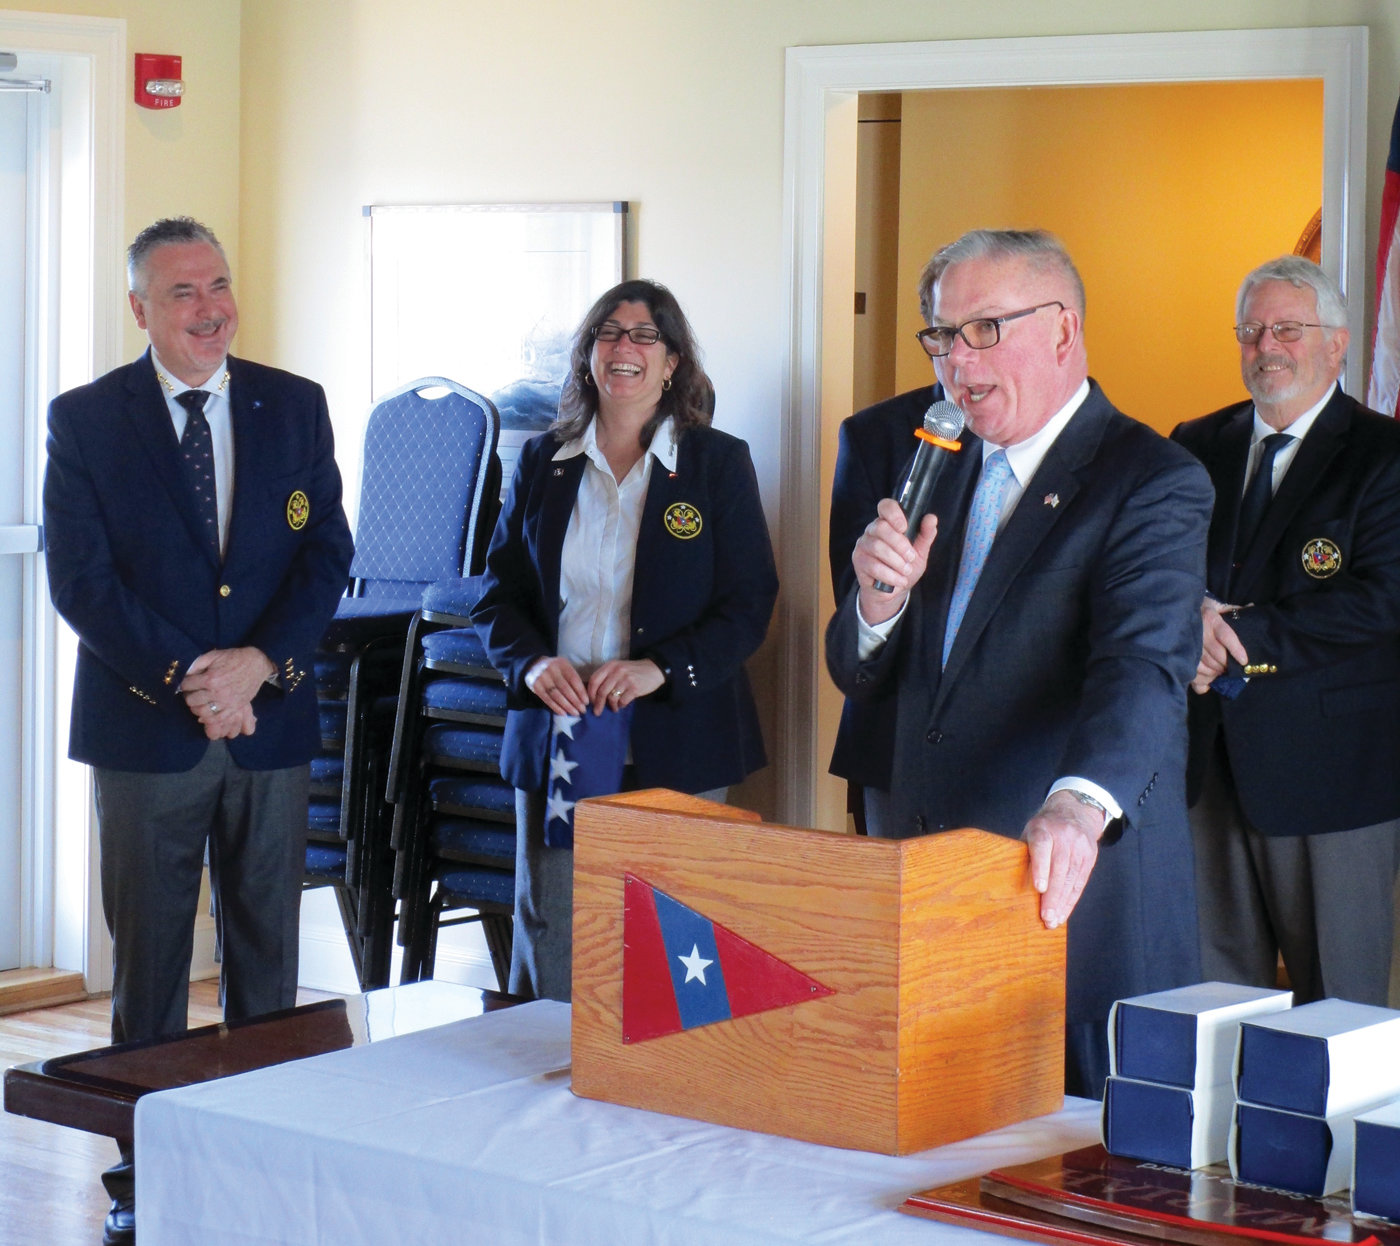 REP'S GREETINGS: Warwick state Rep. Joe McNamara speaks during the Rhode Island Yacht Club's installation ceremony on New Year's Day. Looking on are, from left, David Tessitore and Michelyn Saccoccio.